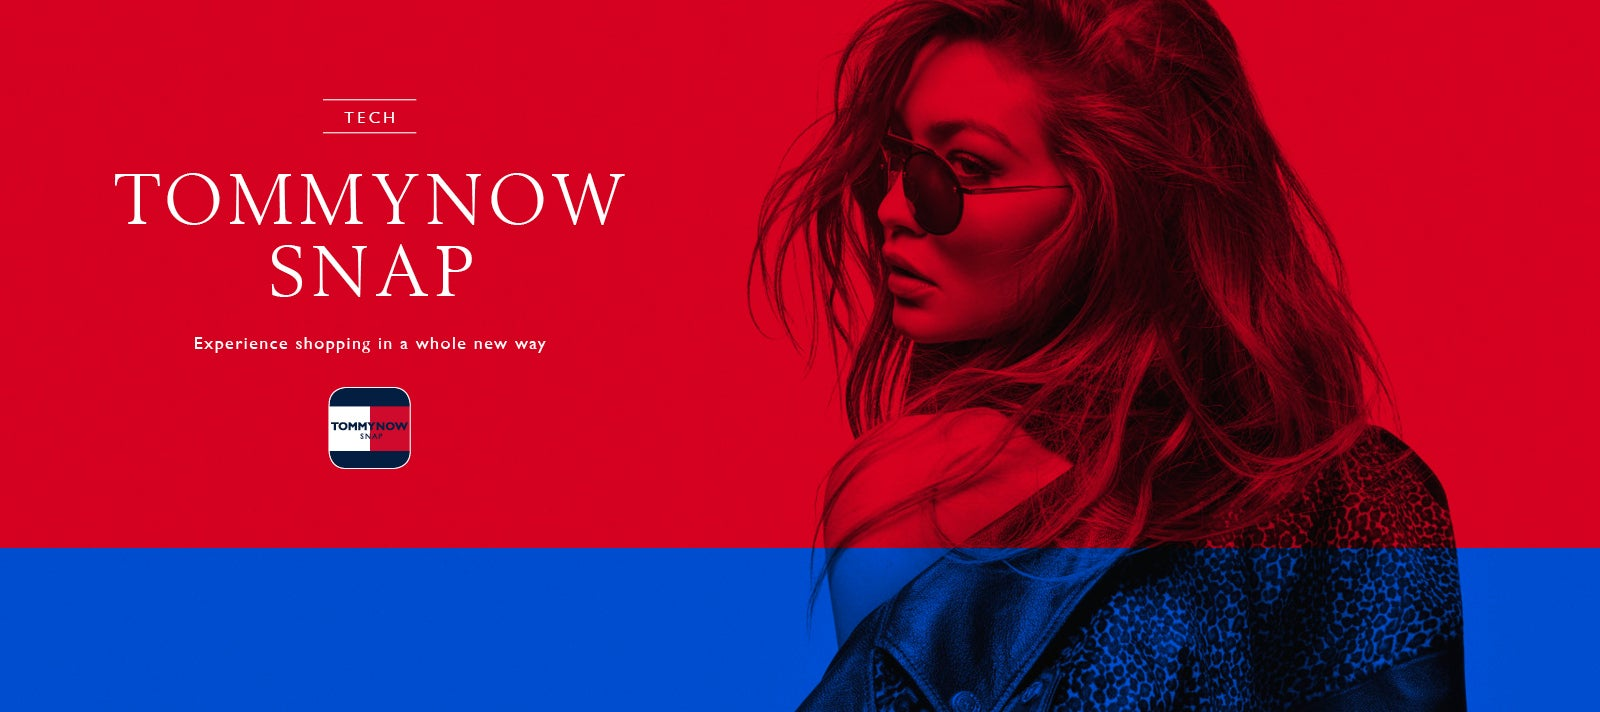 A Tommy Snap App promotion featuring model Gigi Hadid in sunglasses wearing a jacket, off the shoulders.